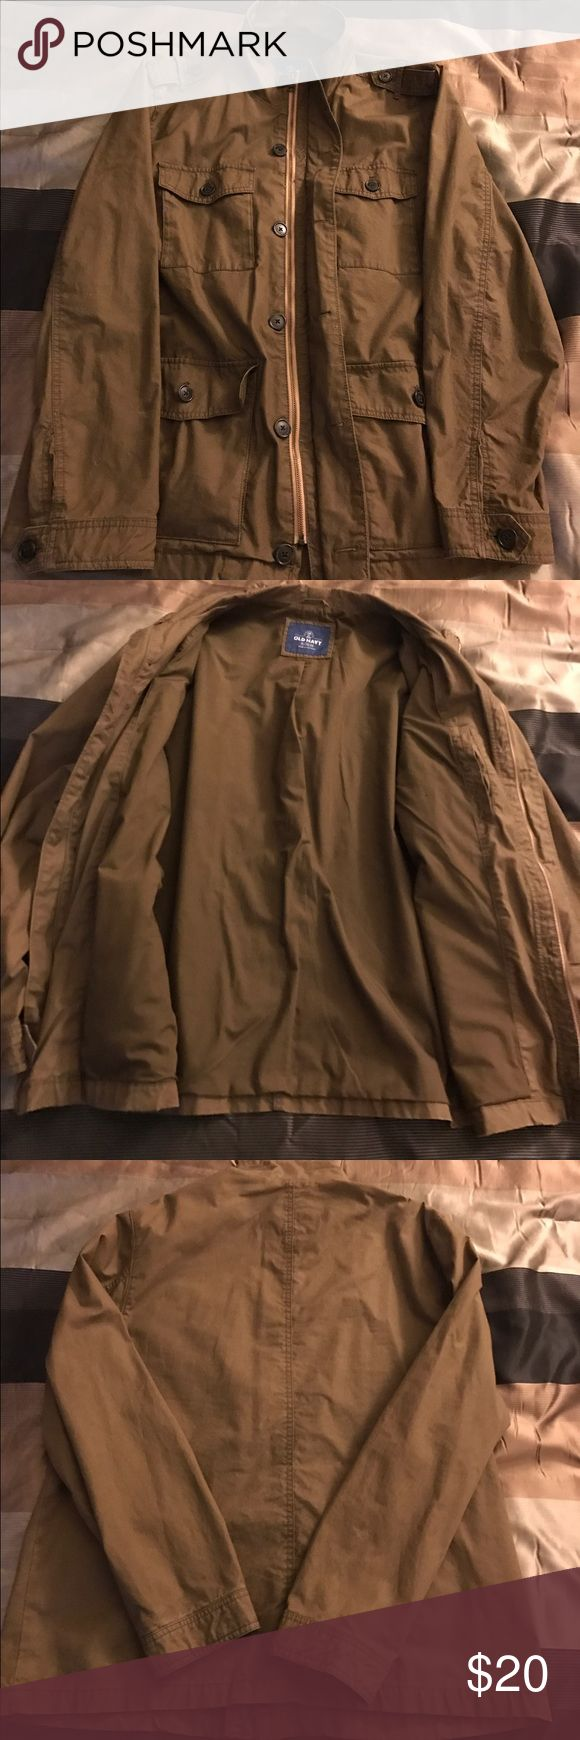 Olive old navy military style jacket. Old navy great condition military style xl jacket. Old Navy Jackets & Coats Military & Field